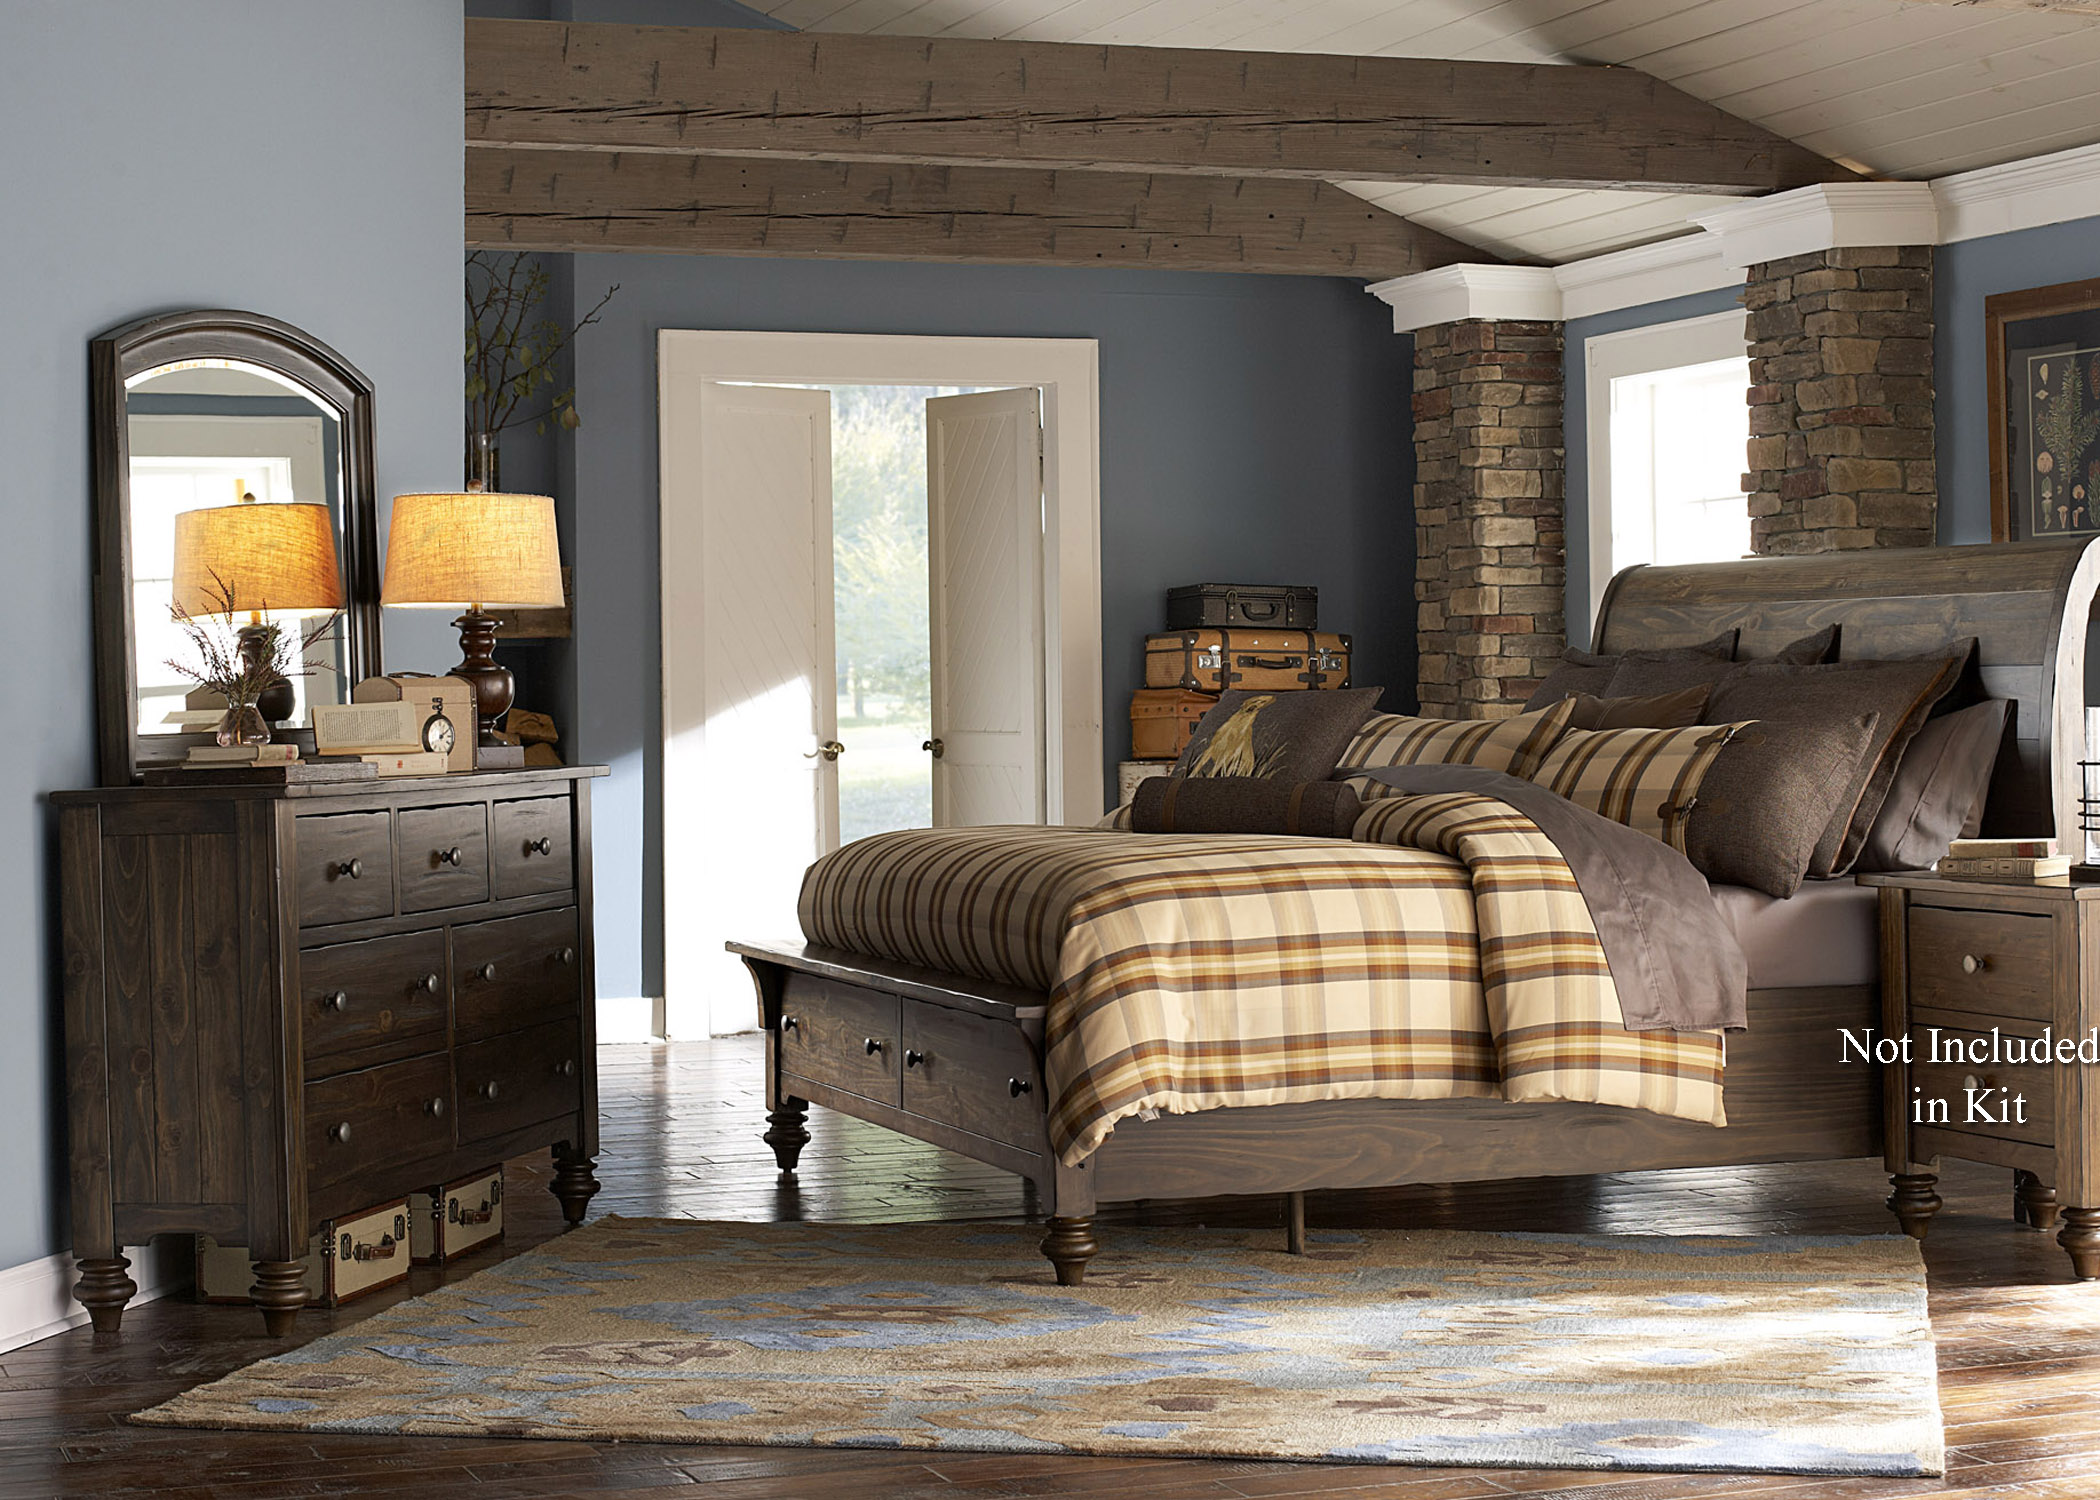 Liberty Furniture Southern Pines Queen Bedroom Group - Item Number: 818-BR-QSBDM